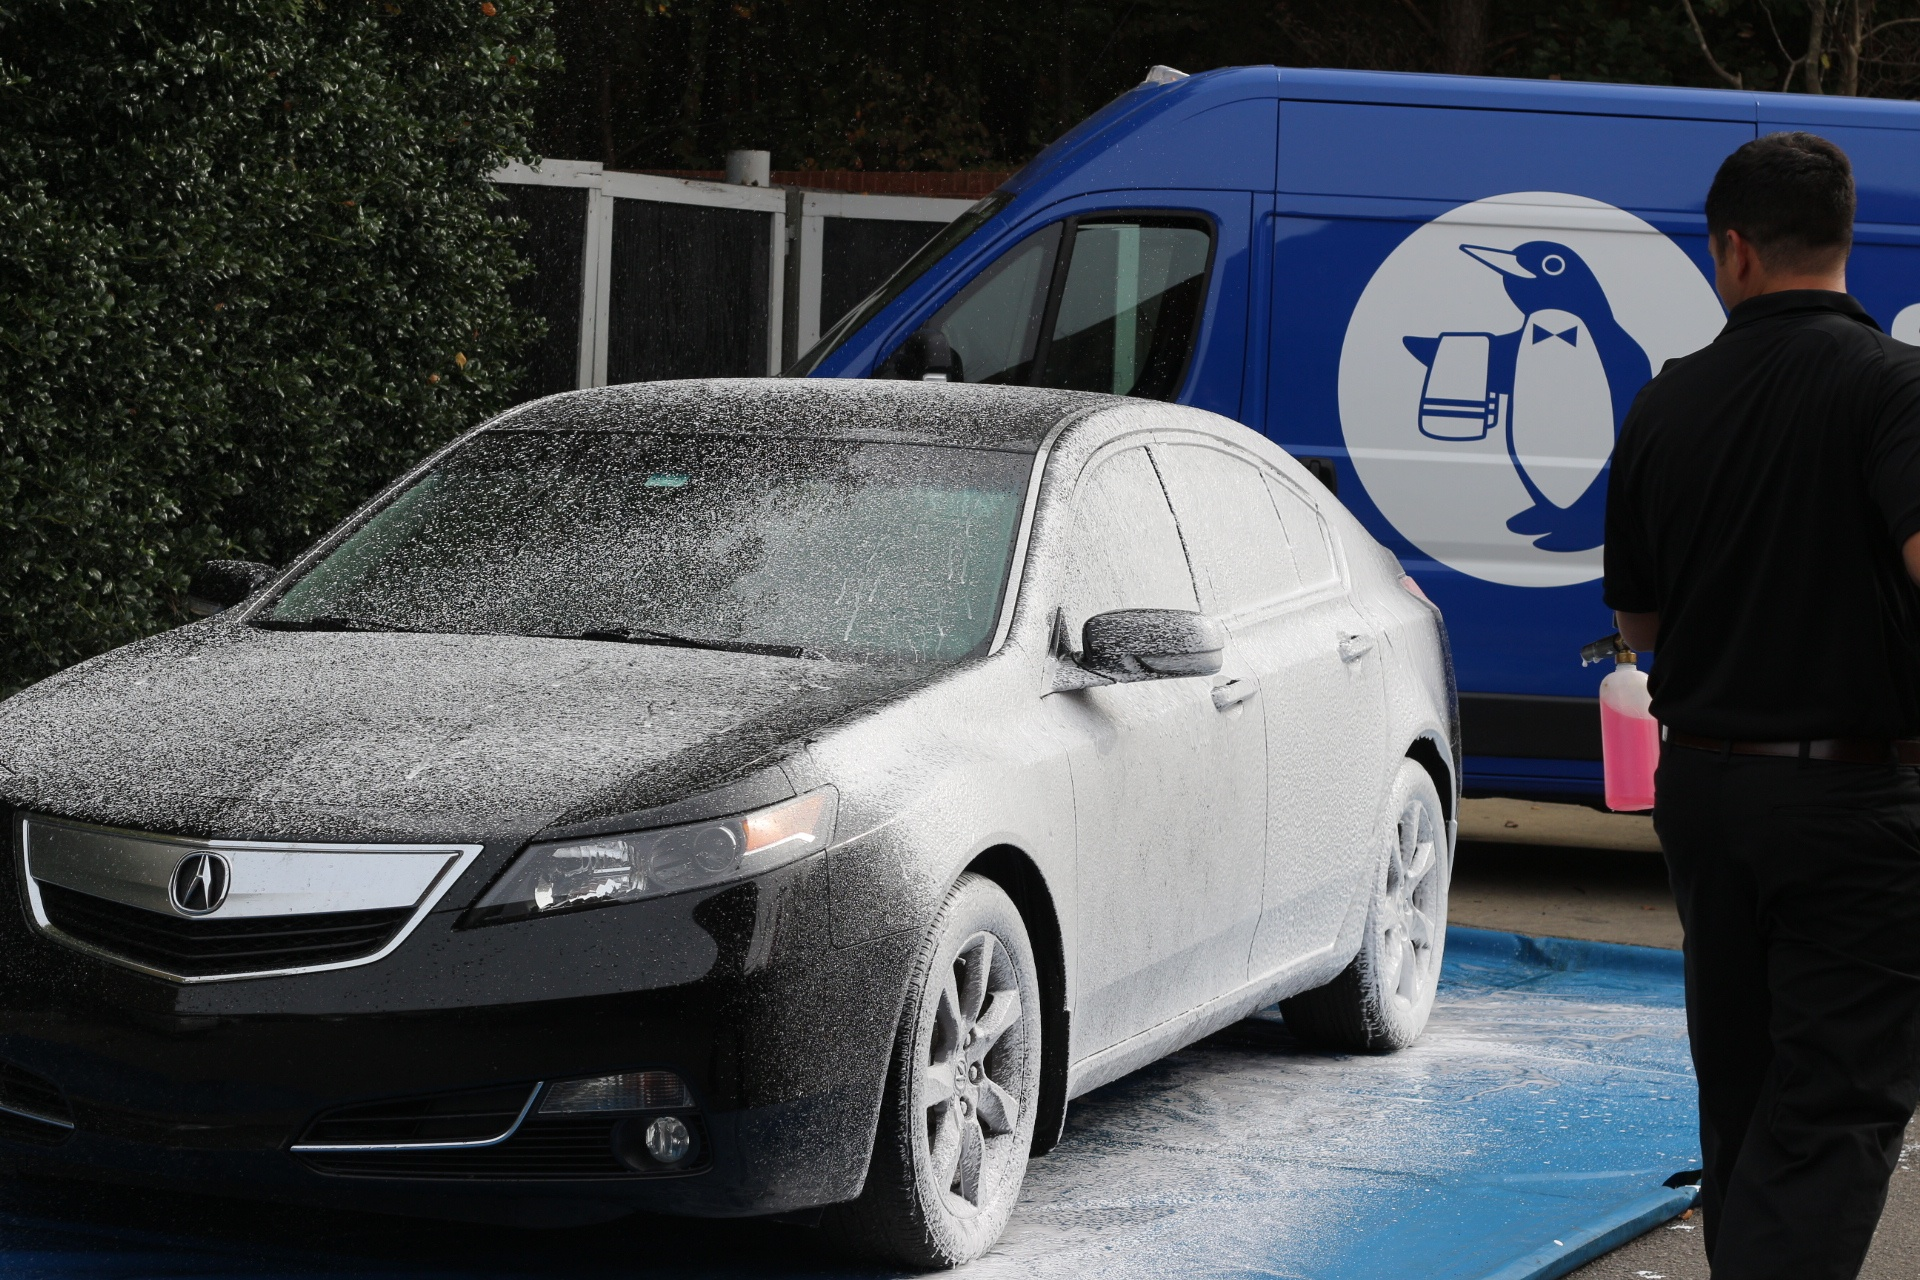 Spiffy, the on-demand mobile car wash and detailing company changing the on demand economy.